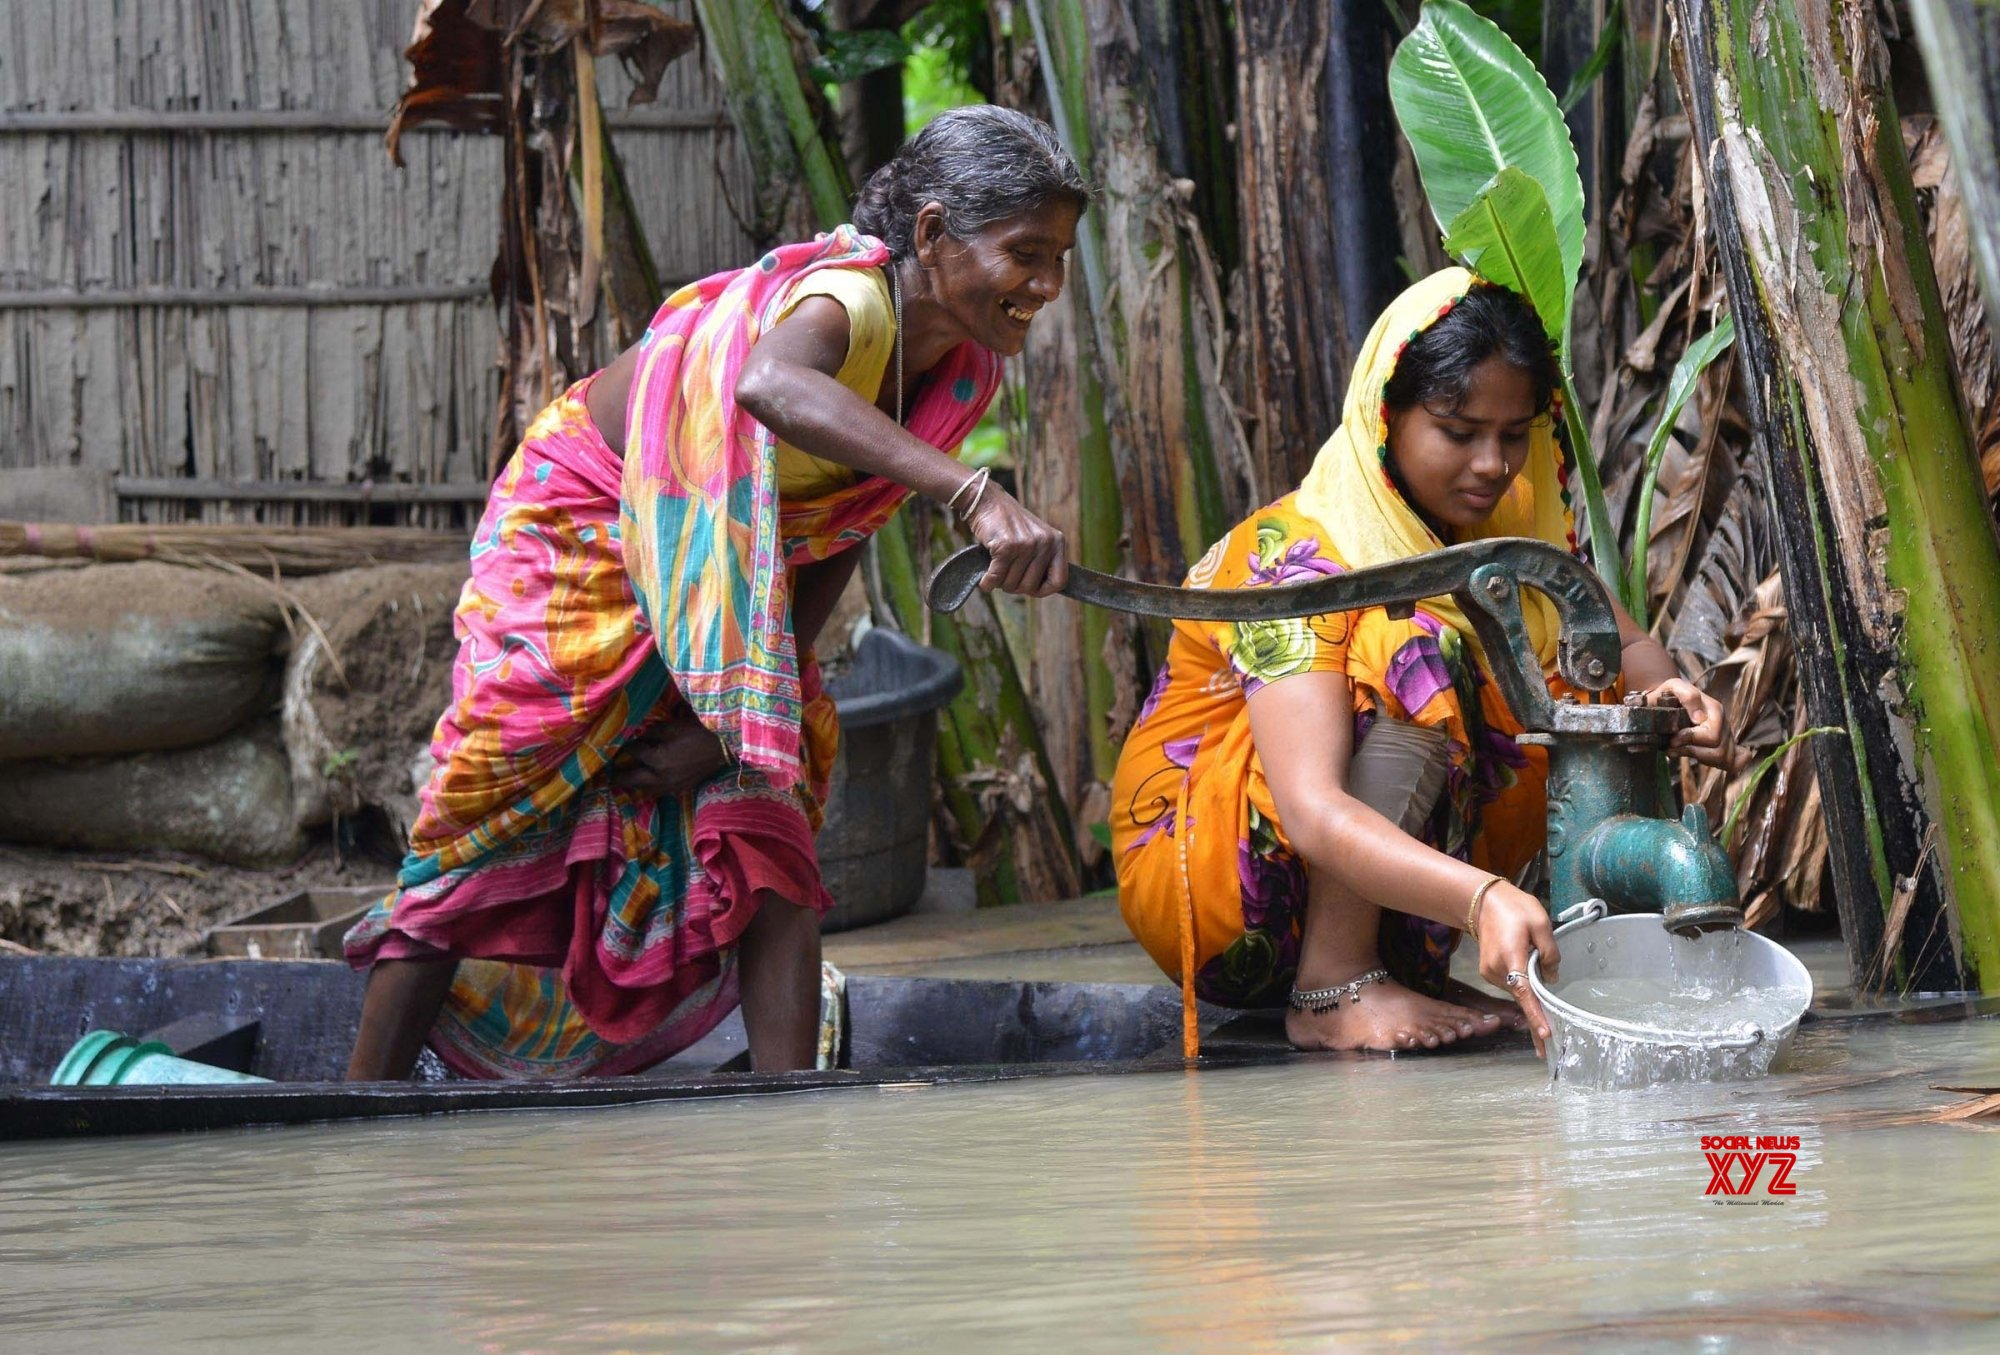 Morigaon (Assam): Women busy collecting water #Gallery